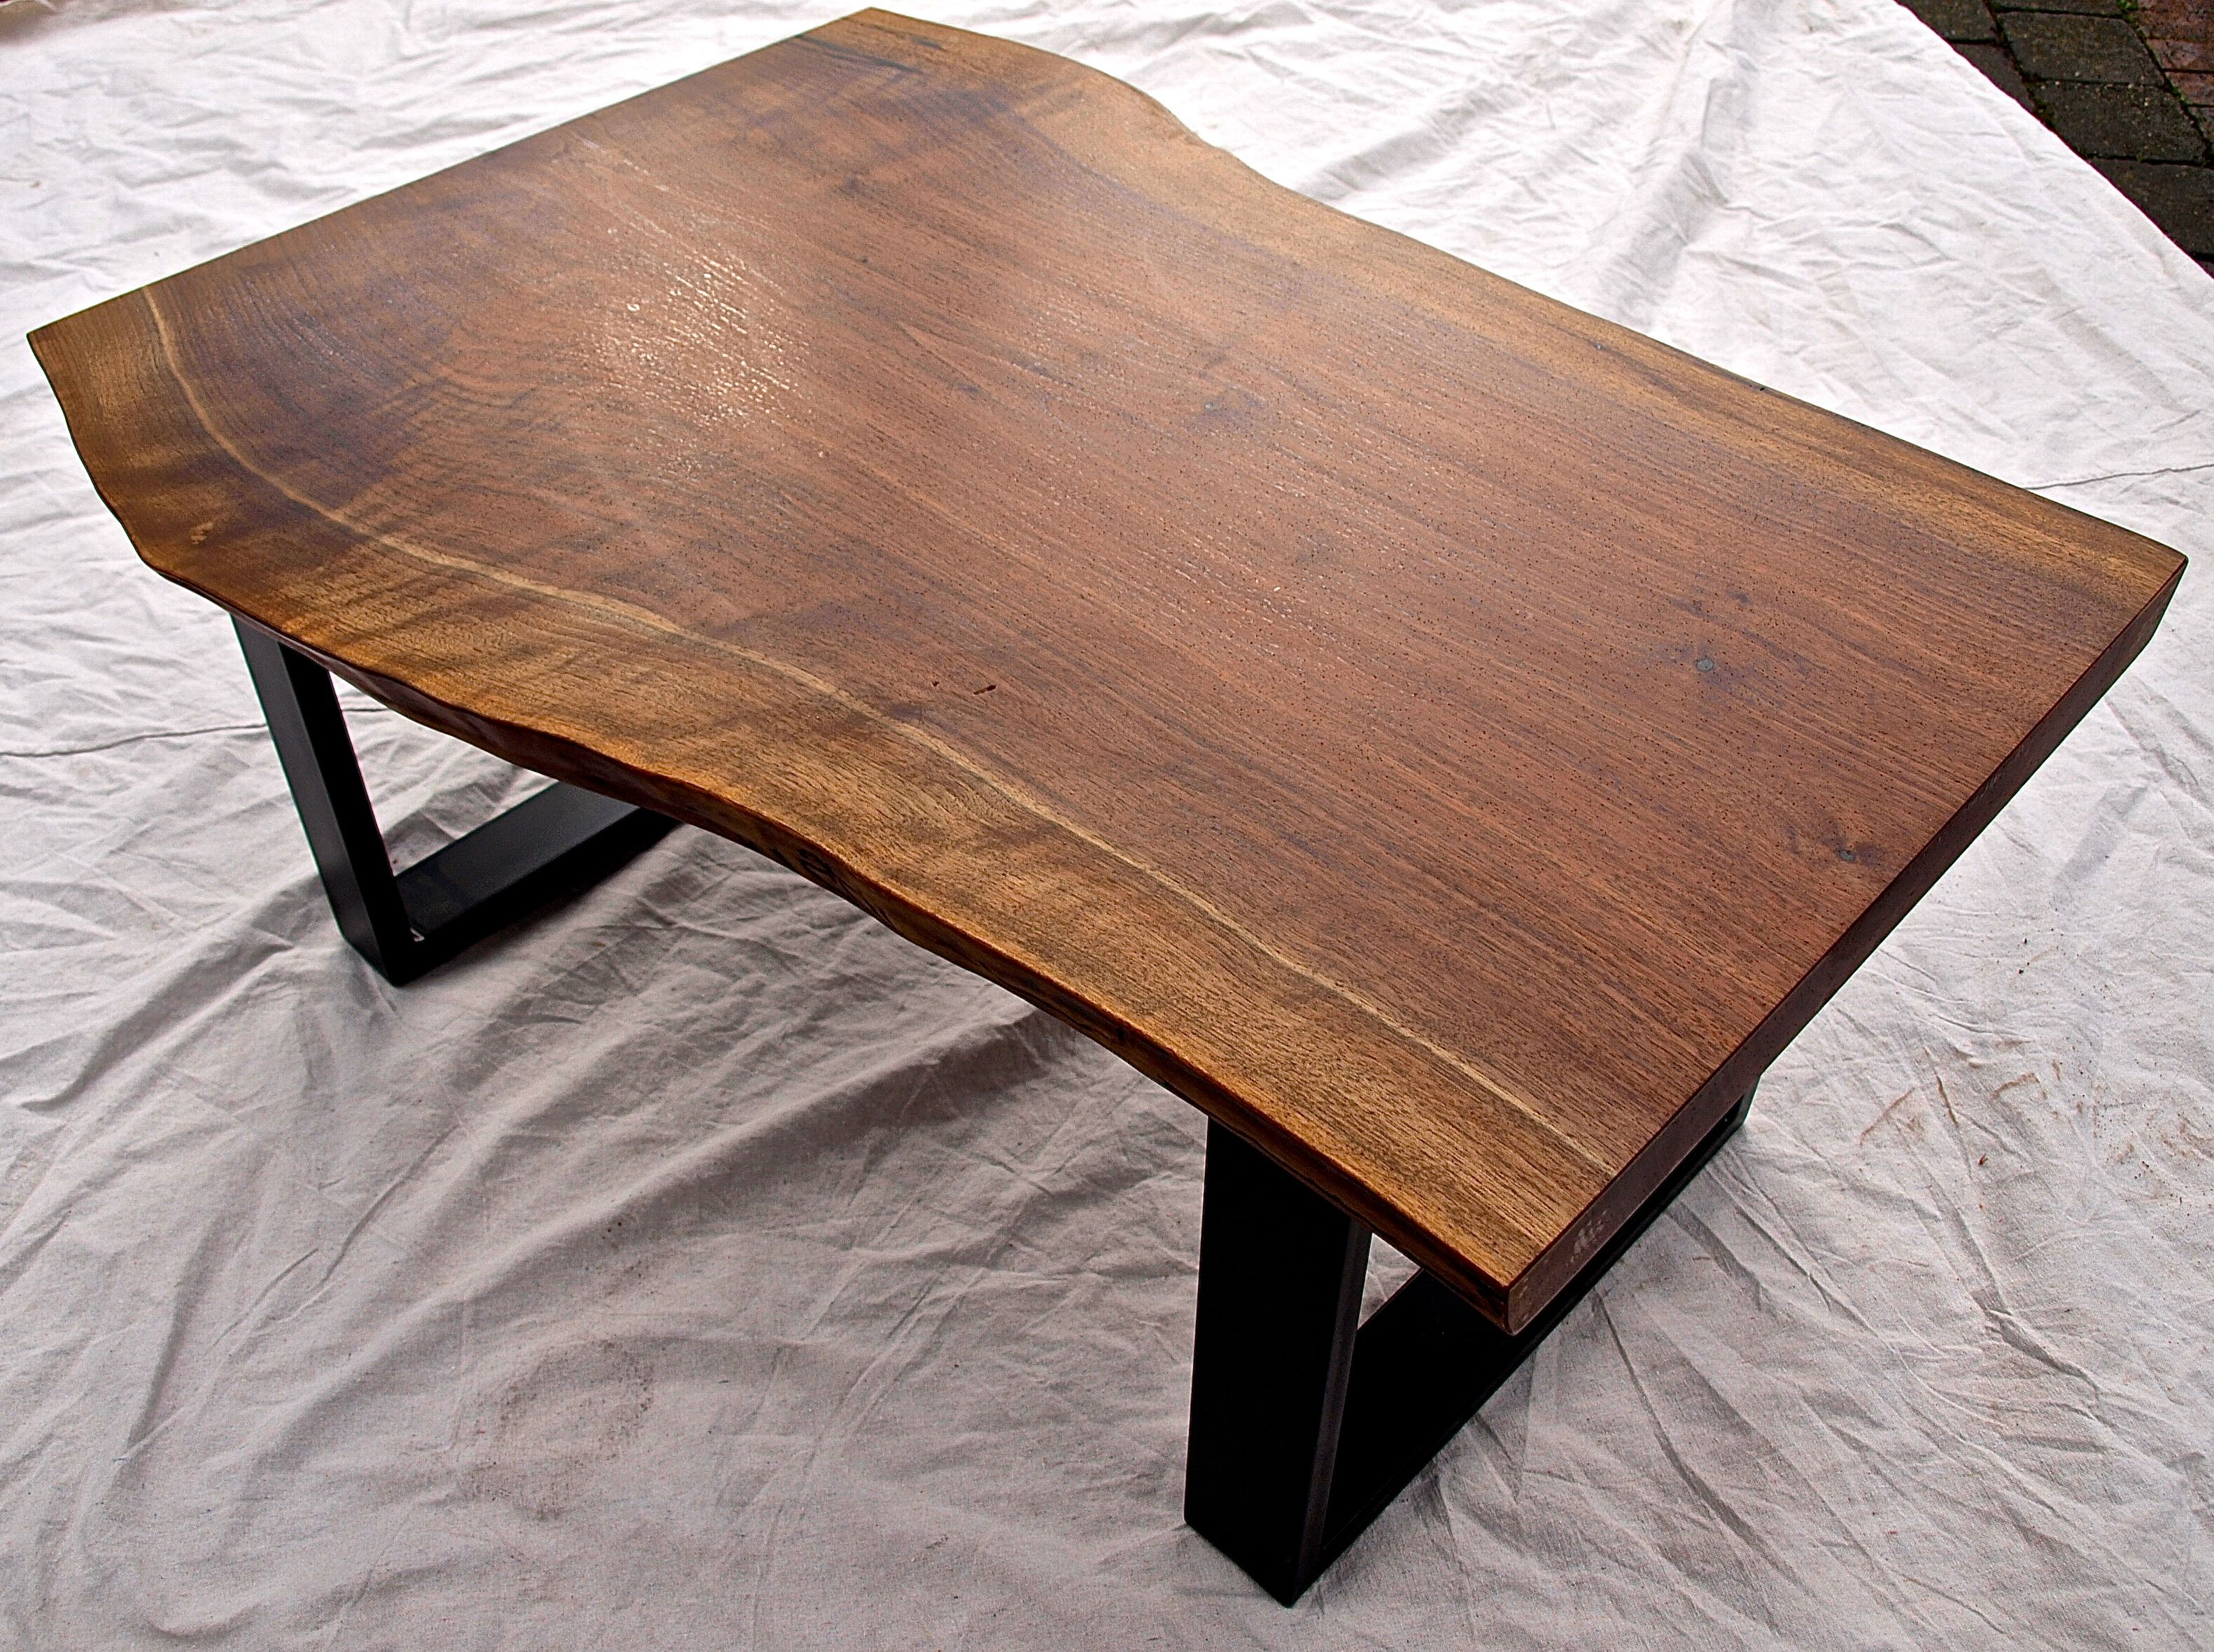 Hand Crafted Live Edge Walnut Coffee Table by WITNESS TREE STUDIOS